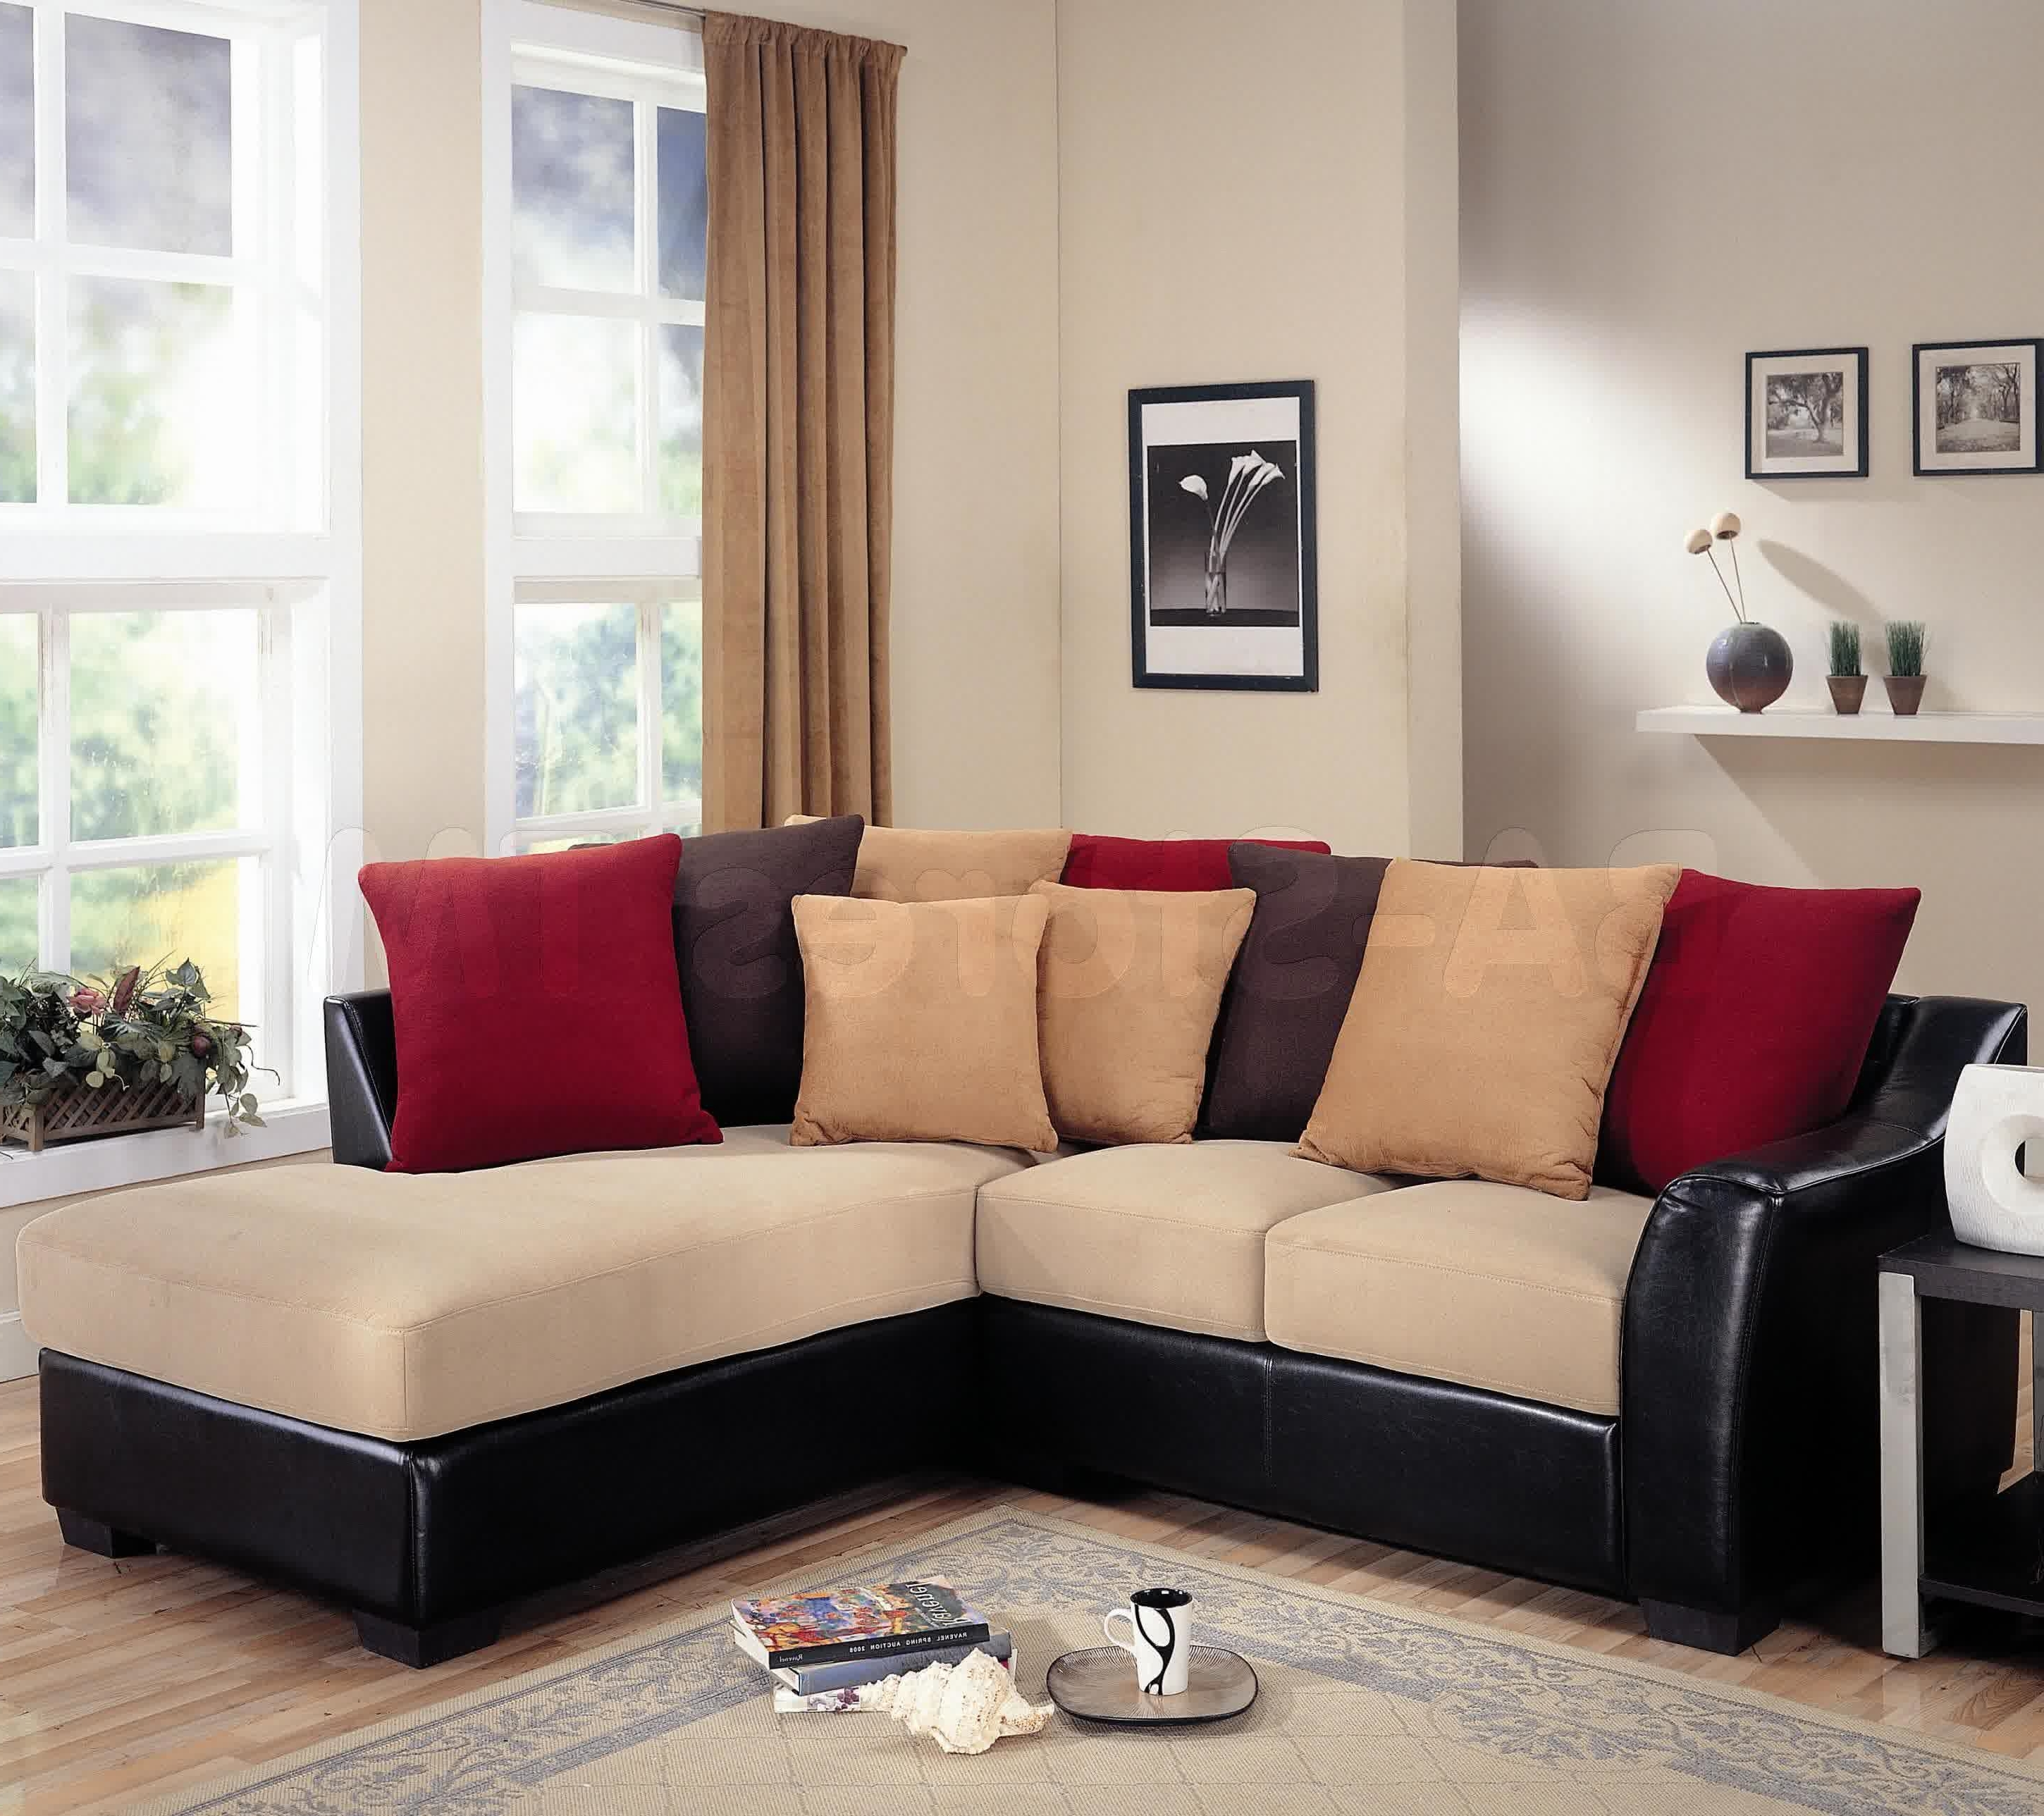 Clearance Sectional Sofas In 2018 Home Designs : Bobs Living Room Sets Cheap Sectional Sofas Under (View 5 of 15)